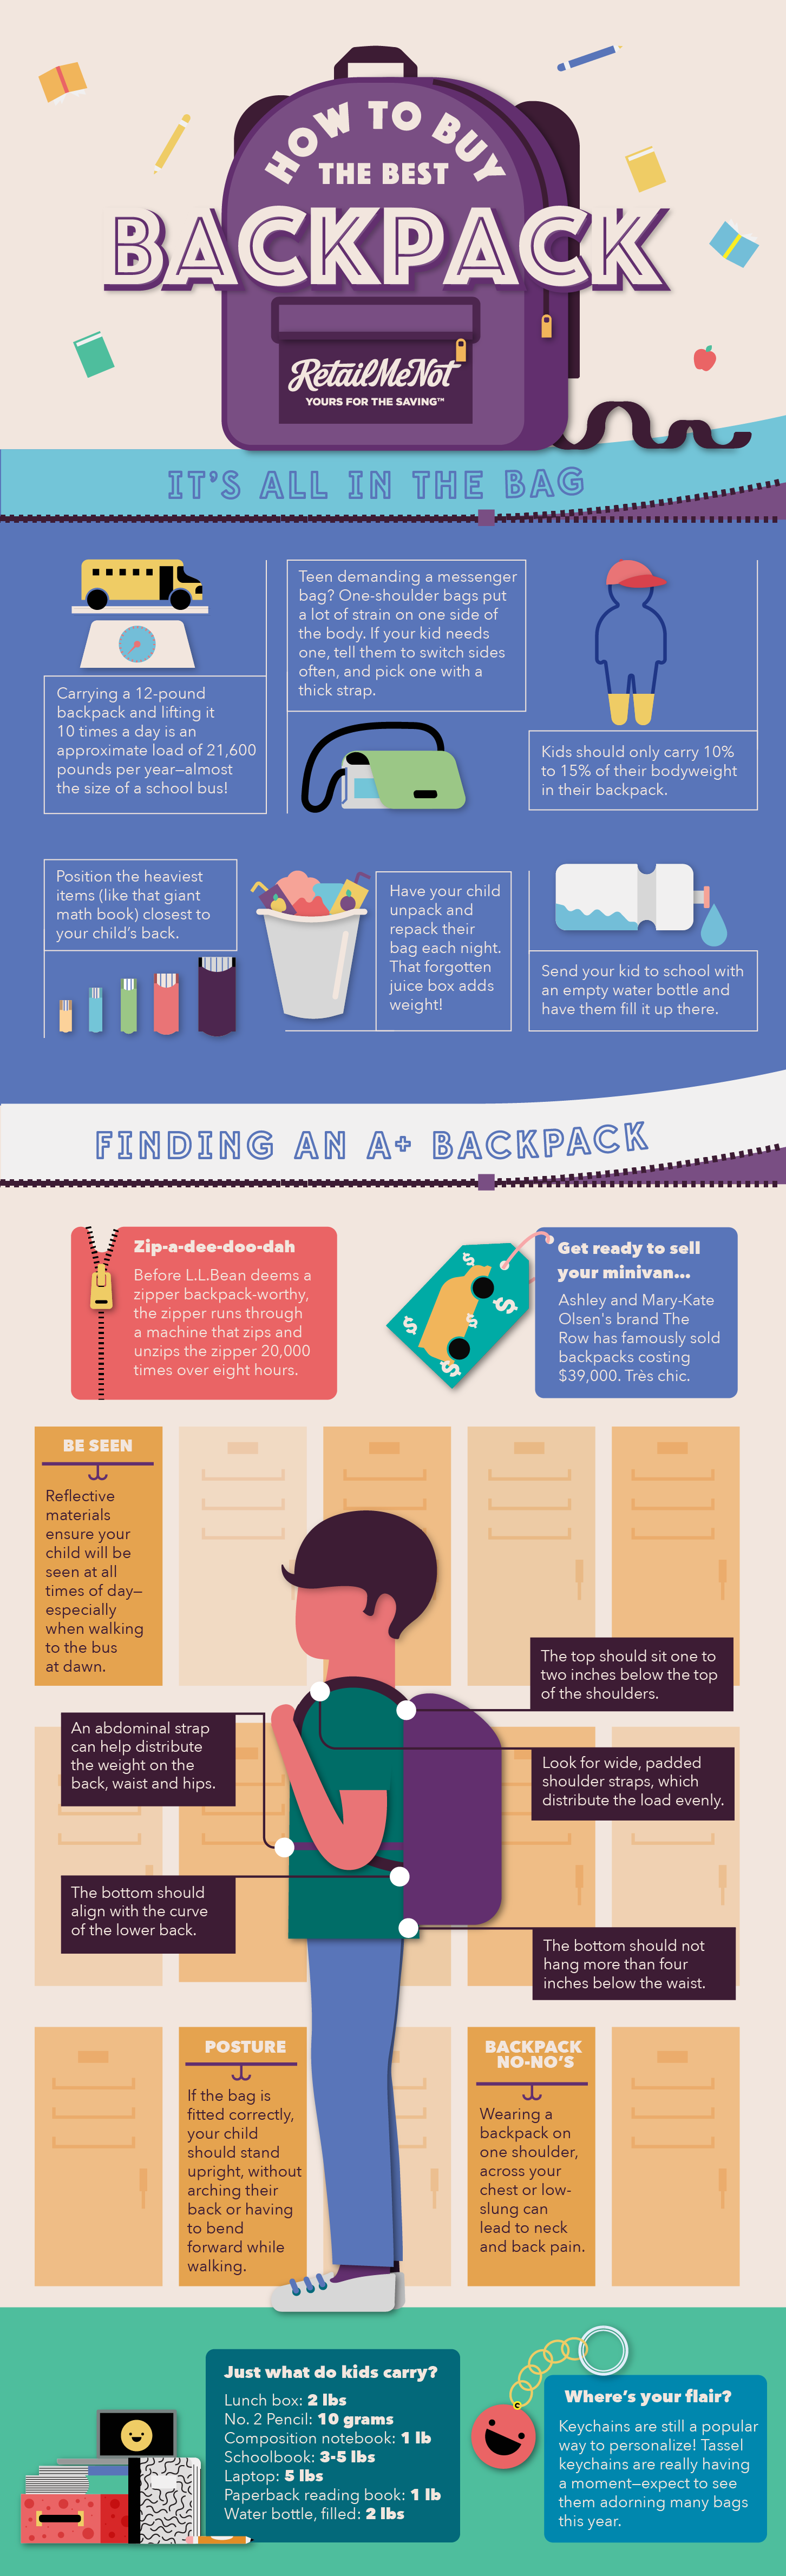 727ef2548faa Which brings us back to the original question  How do you make sure a  backpack is right for a child  A graphic from the folks at RetailMeNot have  outlined ...